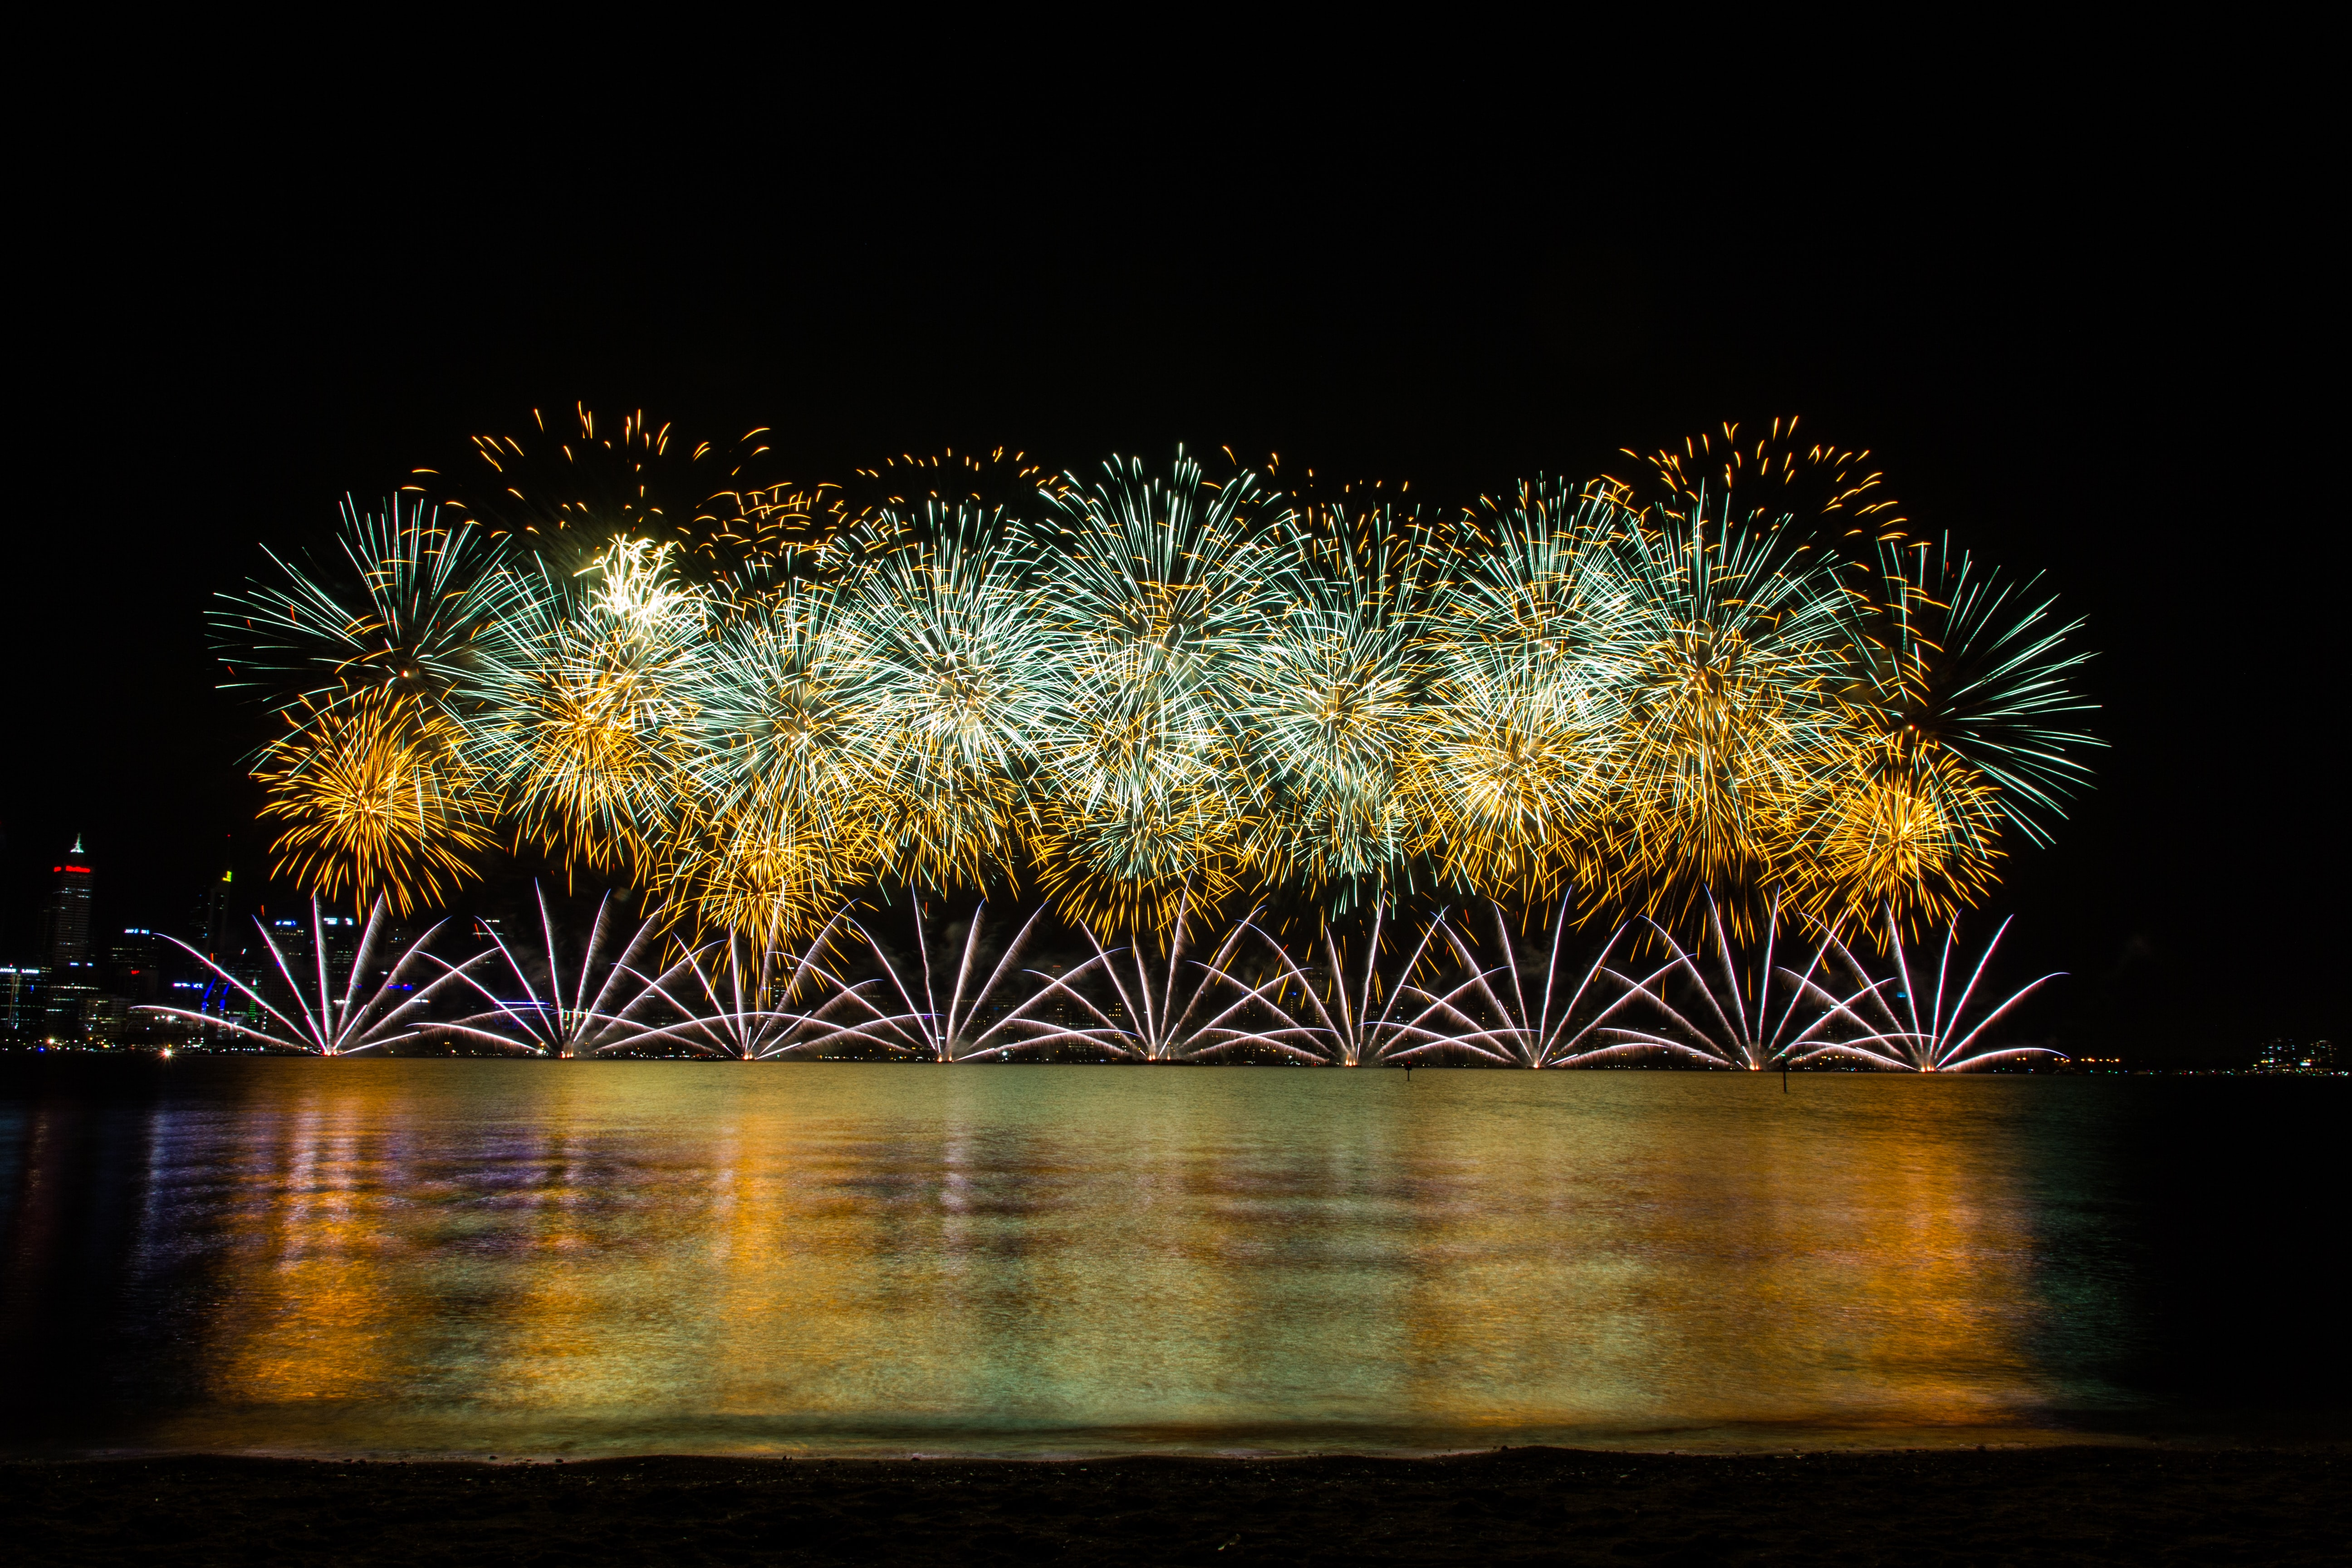 time lapse photography of fireworks